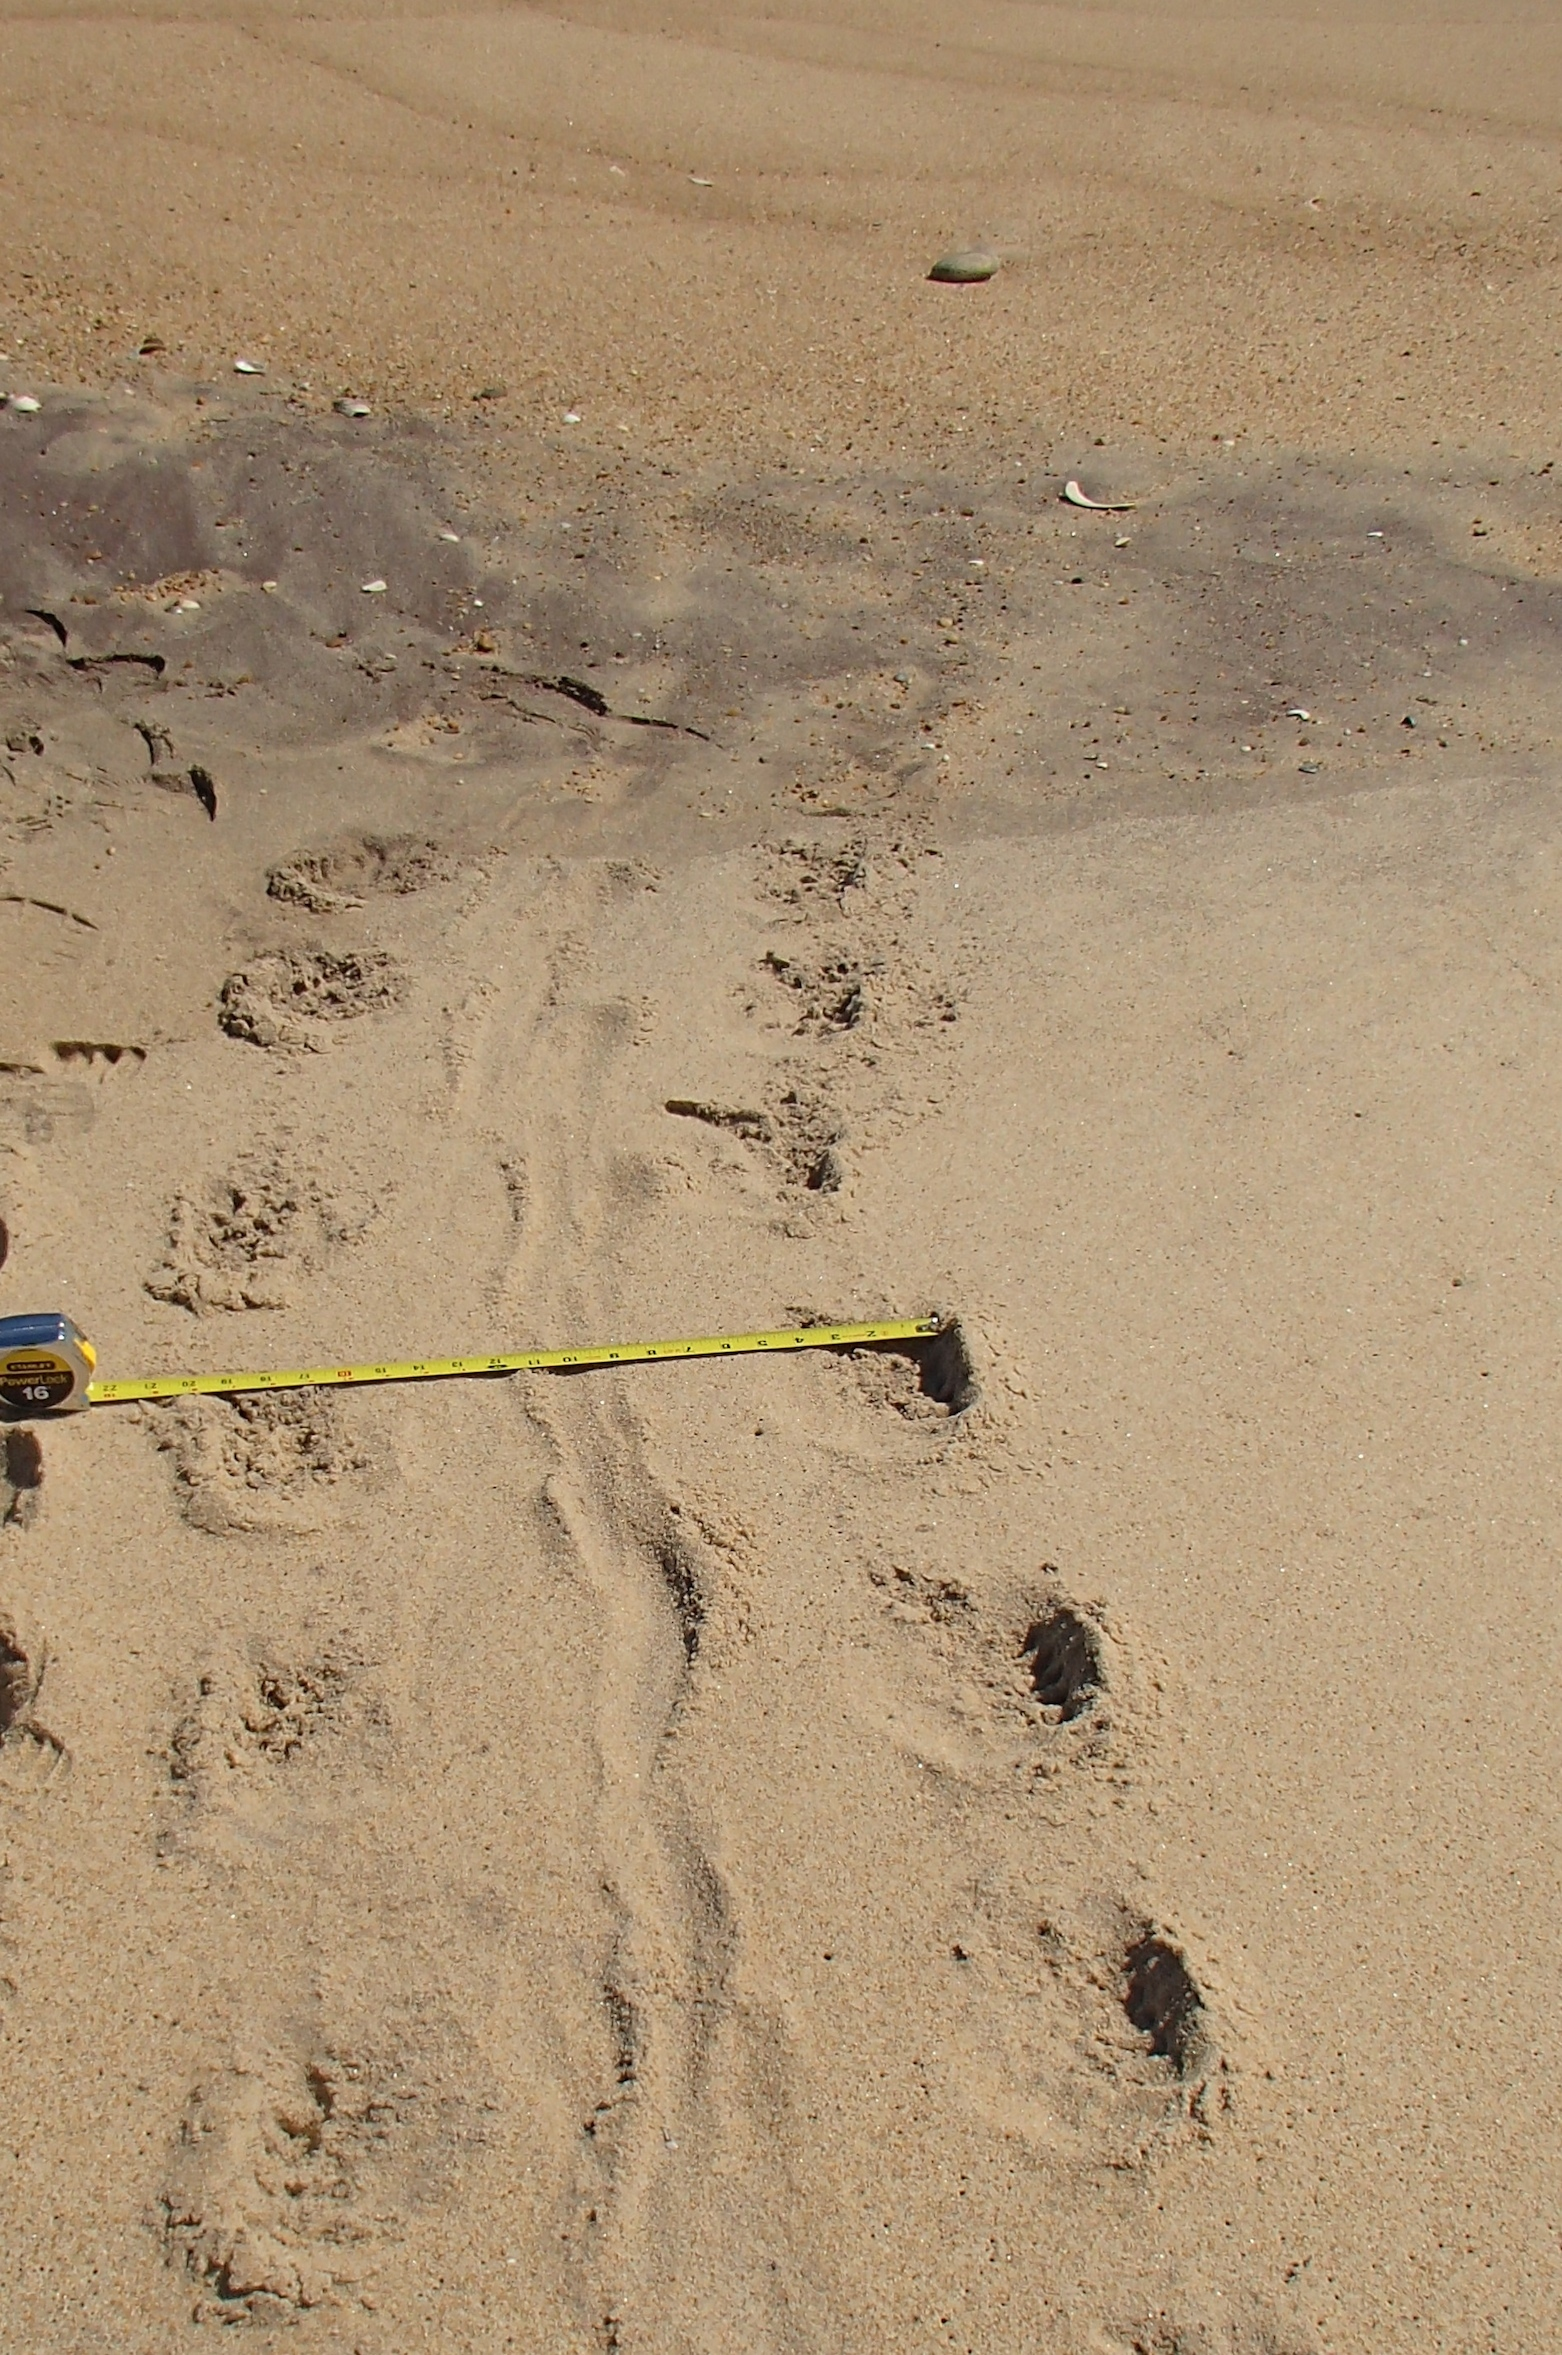 Photo 4: This 20 inch-wide track has five claw marks arranged parallel to the direction of travel: seal.